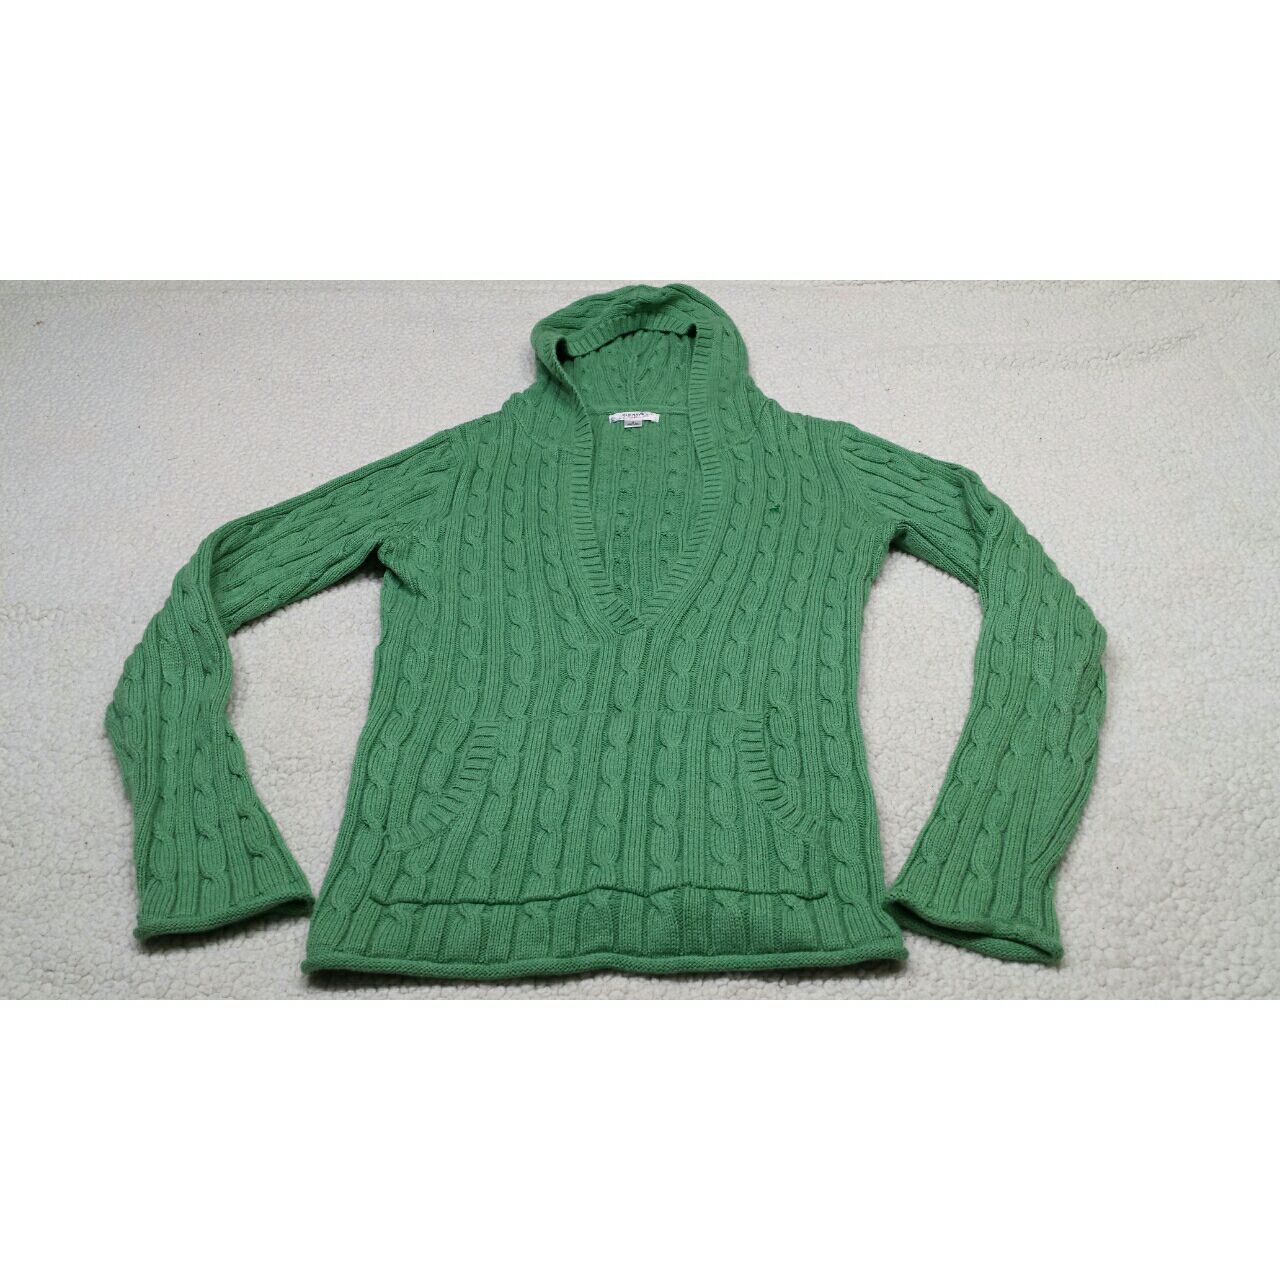 Cable Knit Sweater green, - Mercari: BUY & SELL THINGS YOU LOVE